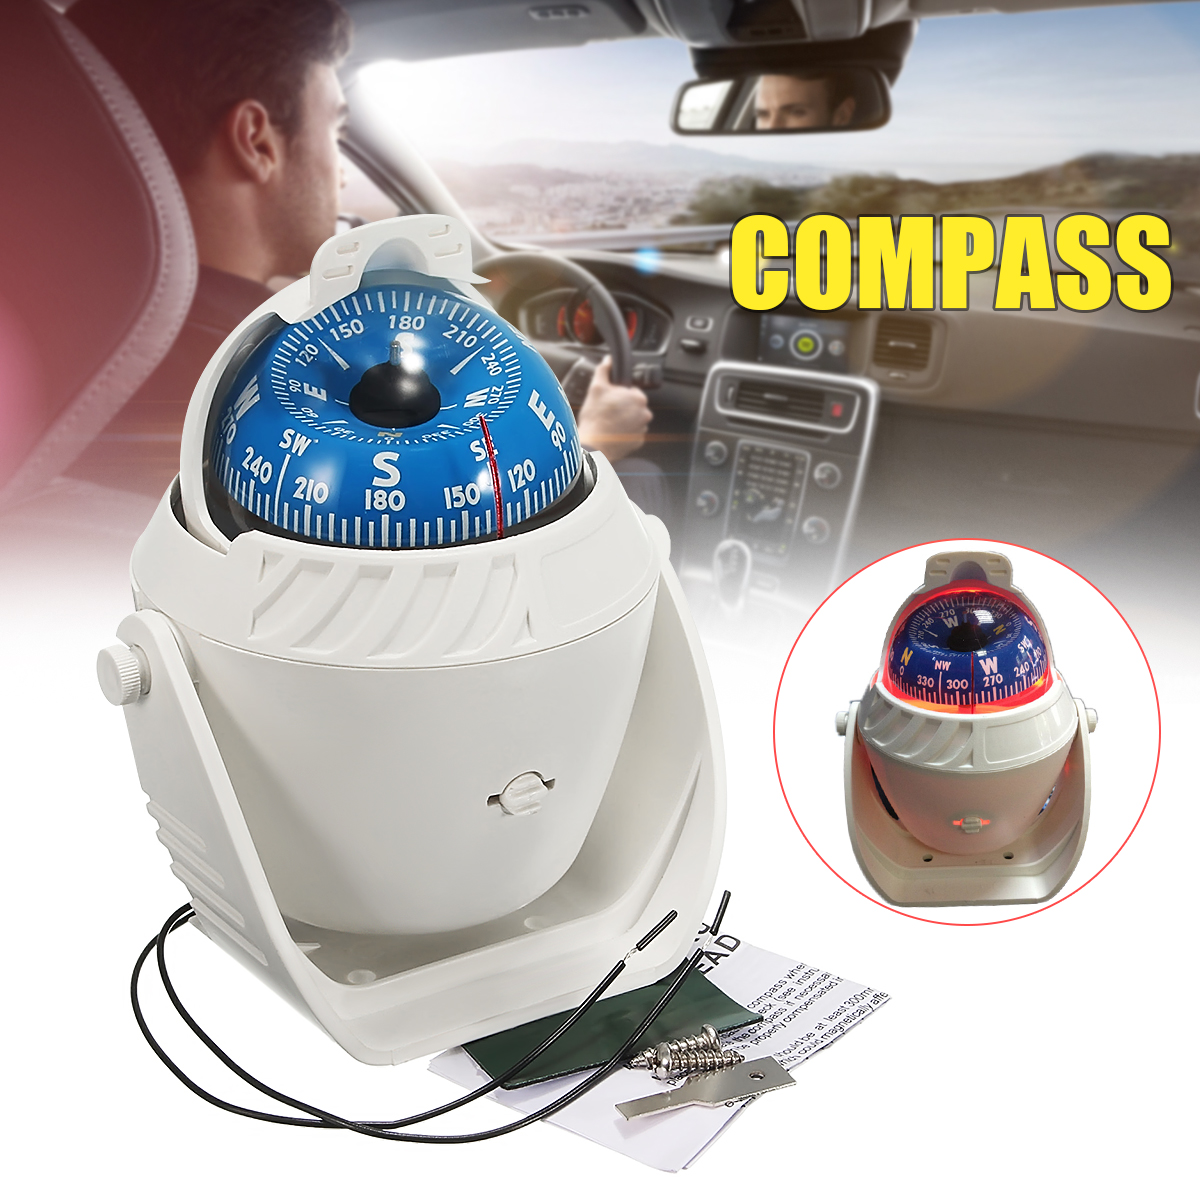 White LED Light Electronic for Travel Vehicle Car Compasses Navigation Sea Marine Military Car Boat Ship Compas